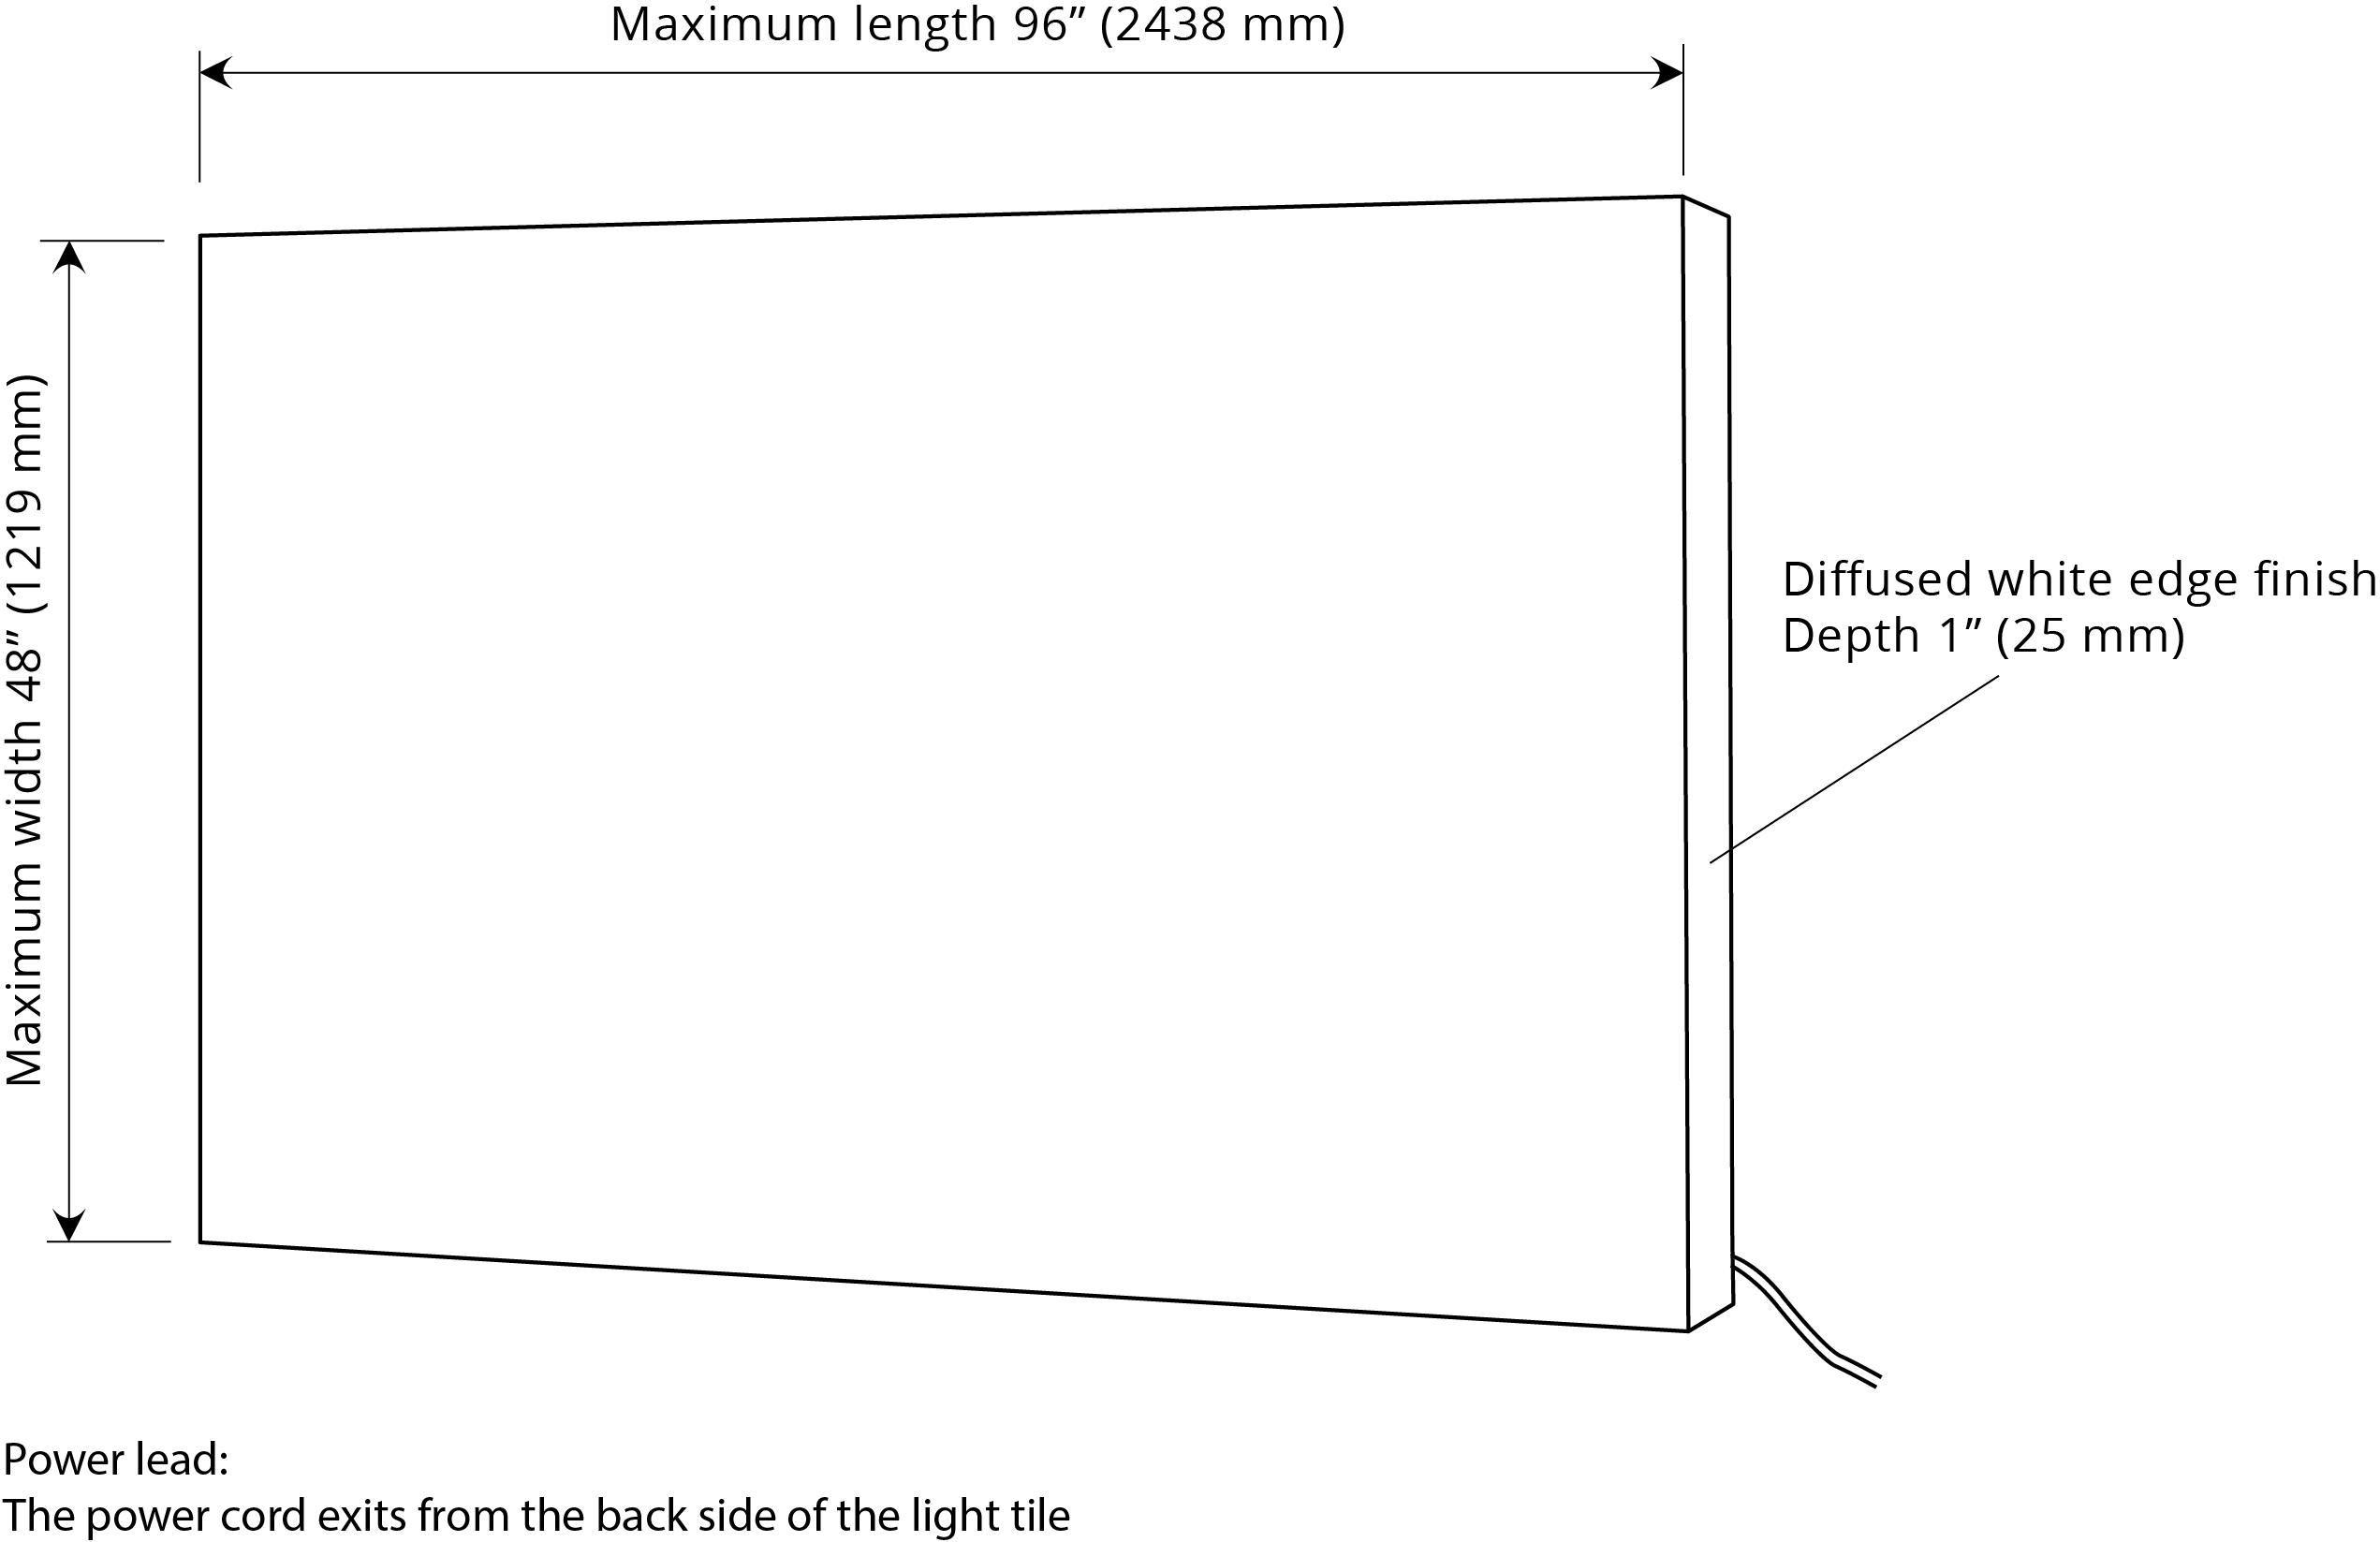 LumiFrost LED light panel dimensions